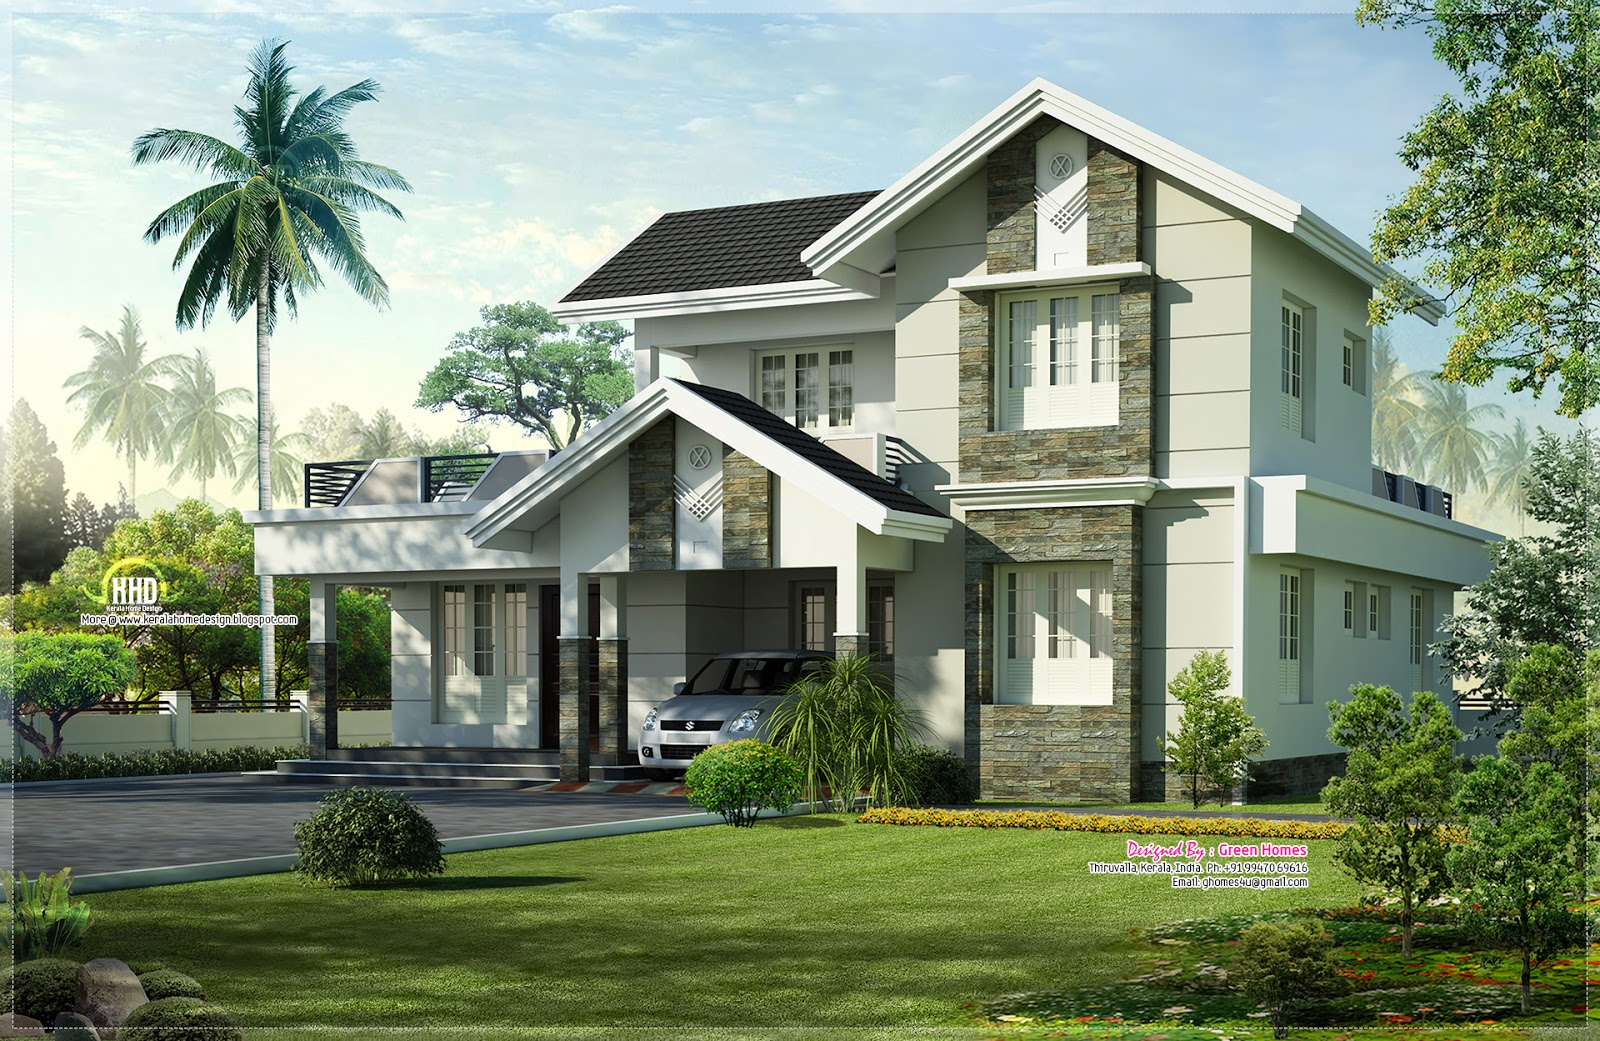 1975 nice home exterior design home kerala plans Home outside design